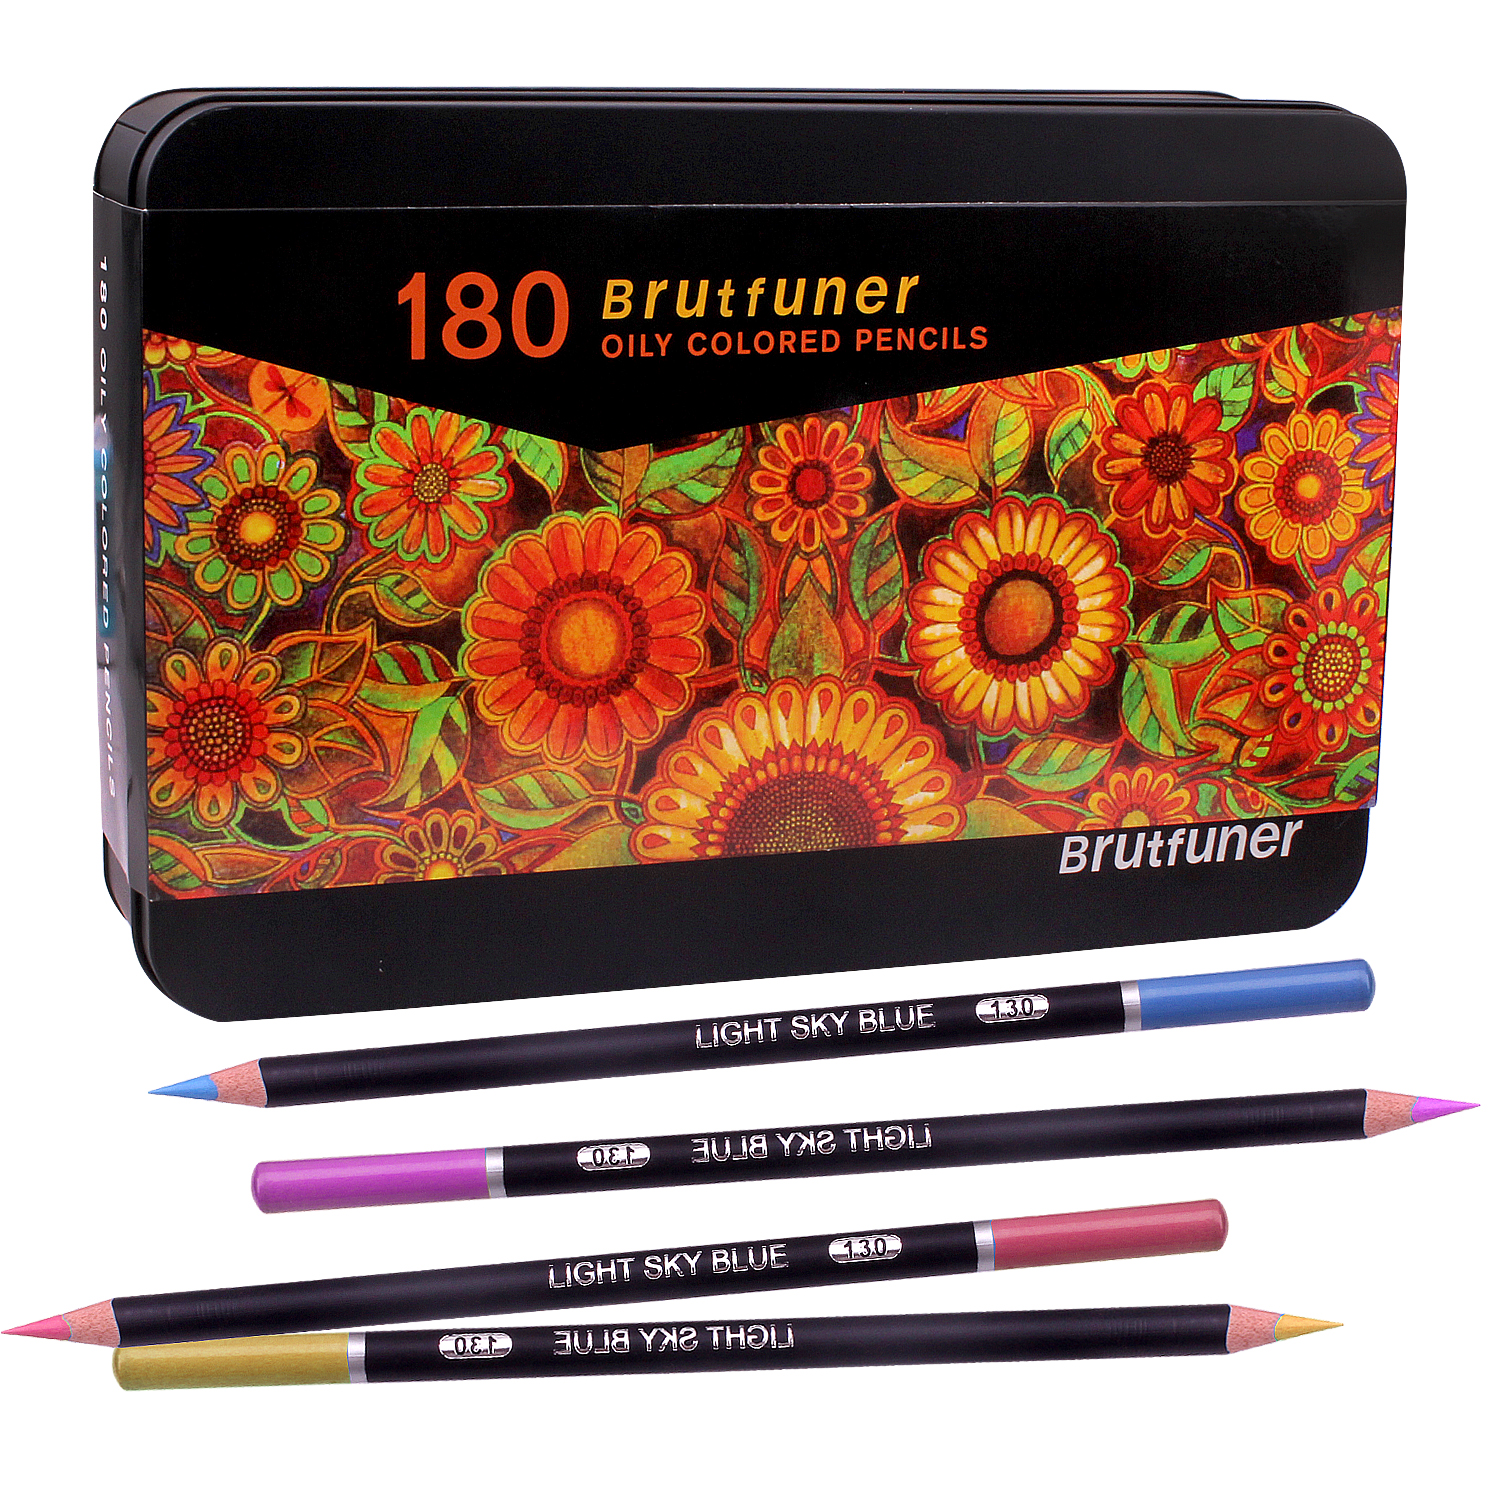 Colouring Pencils with Metal Box,180 Unique Coloured Pencils and Pre Sharpened Crayons for Coloring Book - Ideal Christmas Gift 2